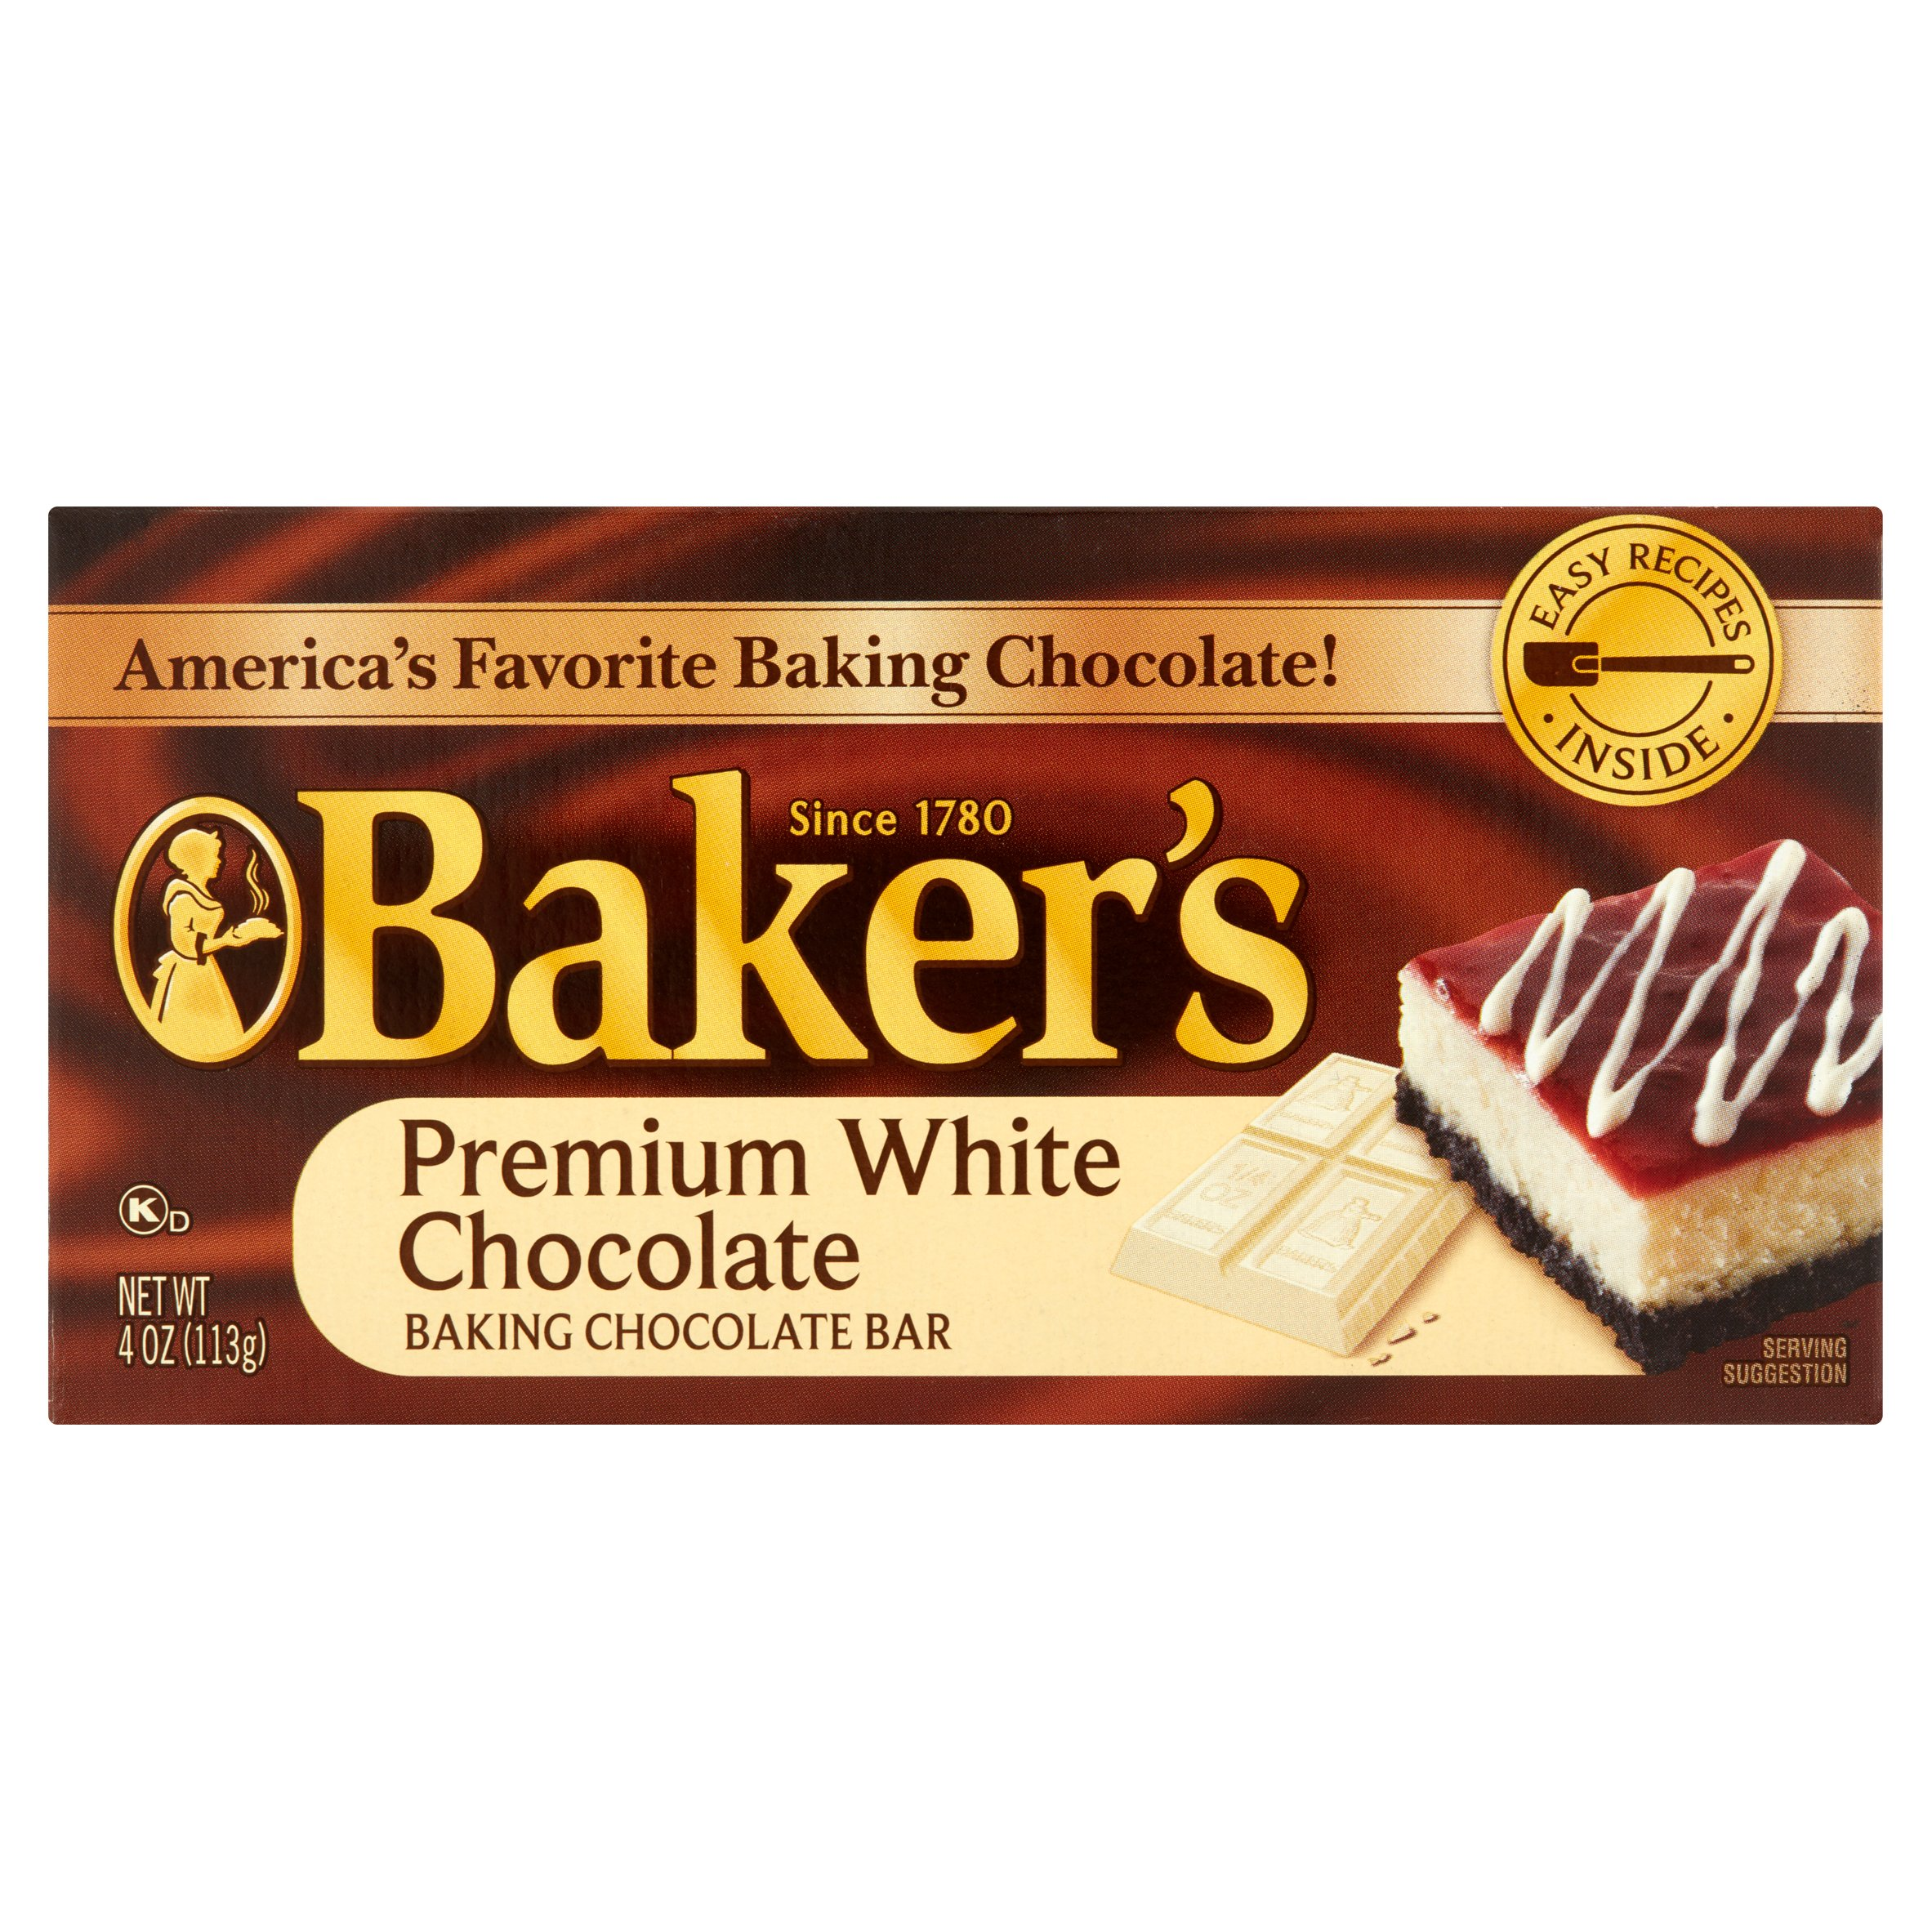 Baker's Premium White Chocolate Baking Chocolate Bar, 4 Oz by Kraft Foods Group, Inc.